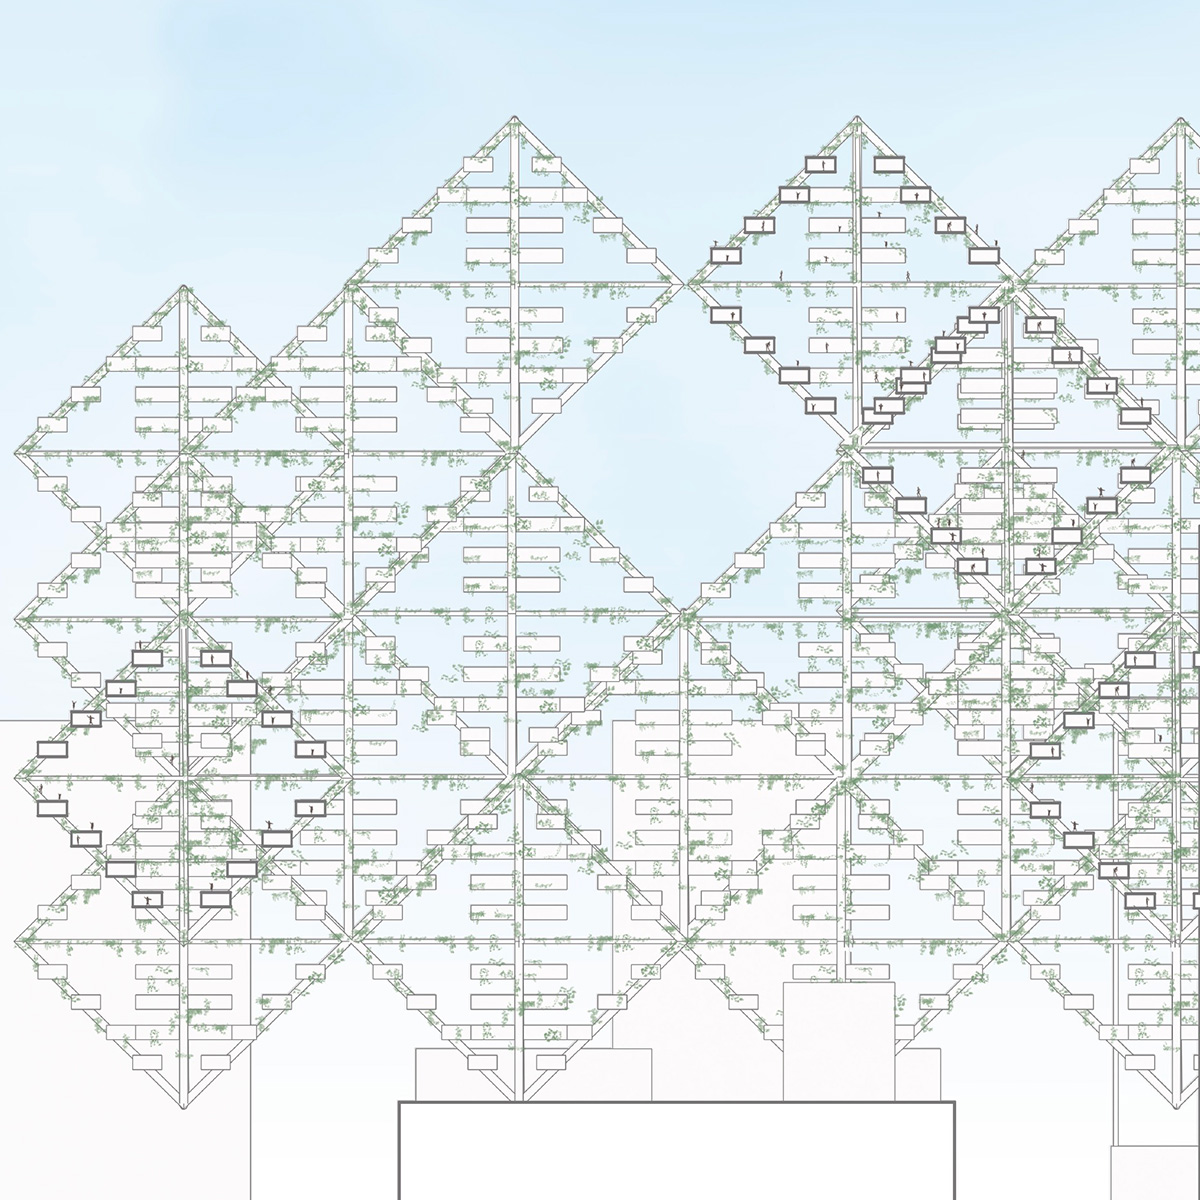 Study of the diagrid infrastructure and housing volumes above the existing city proposed by student Brennan Richards